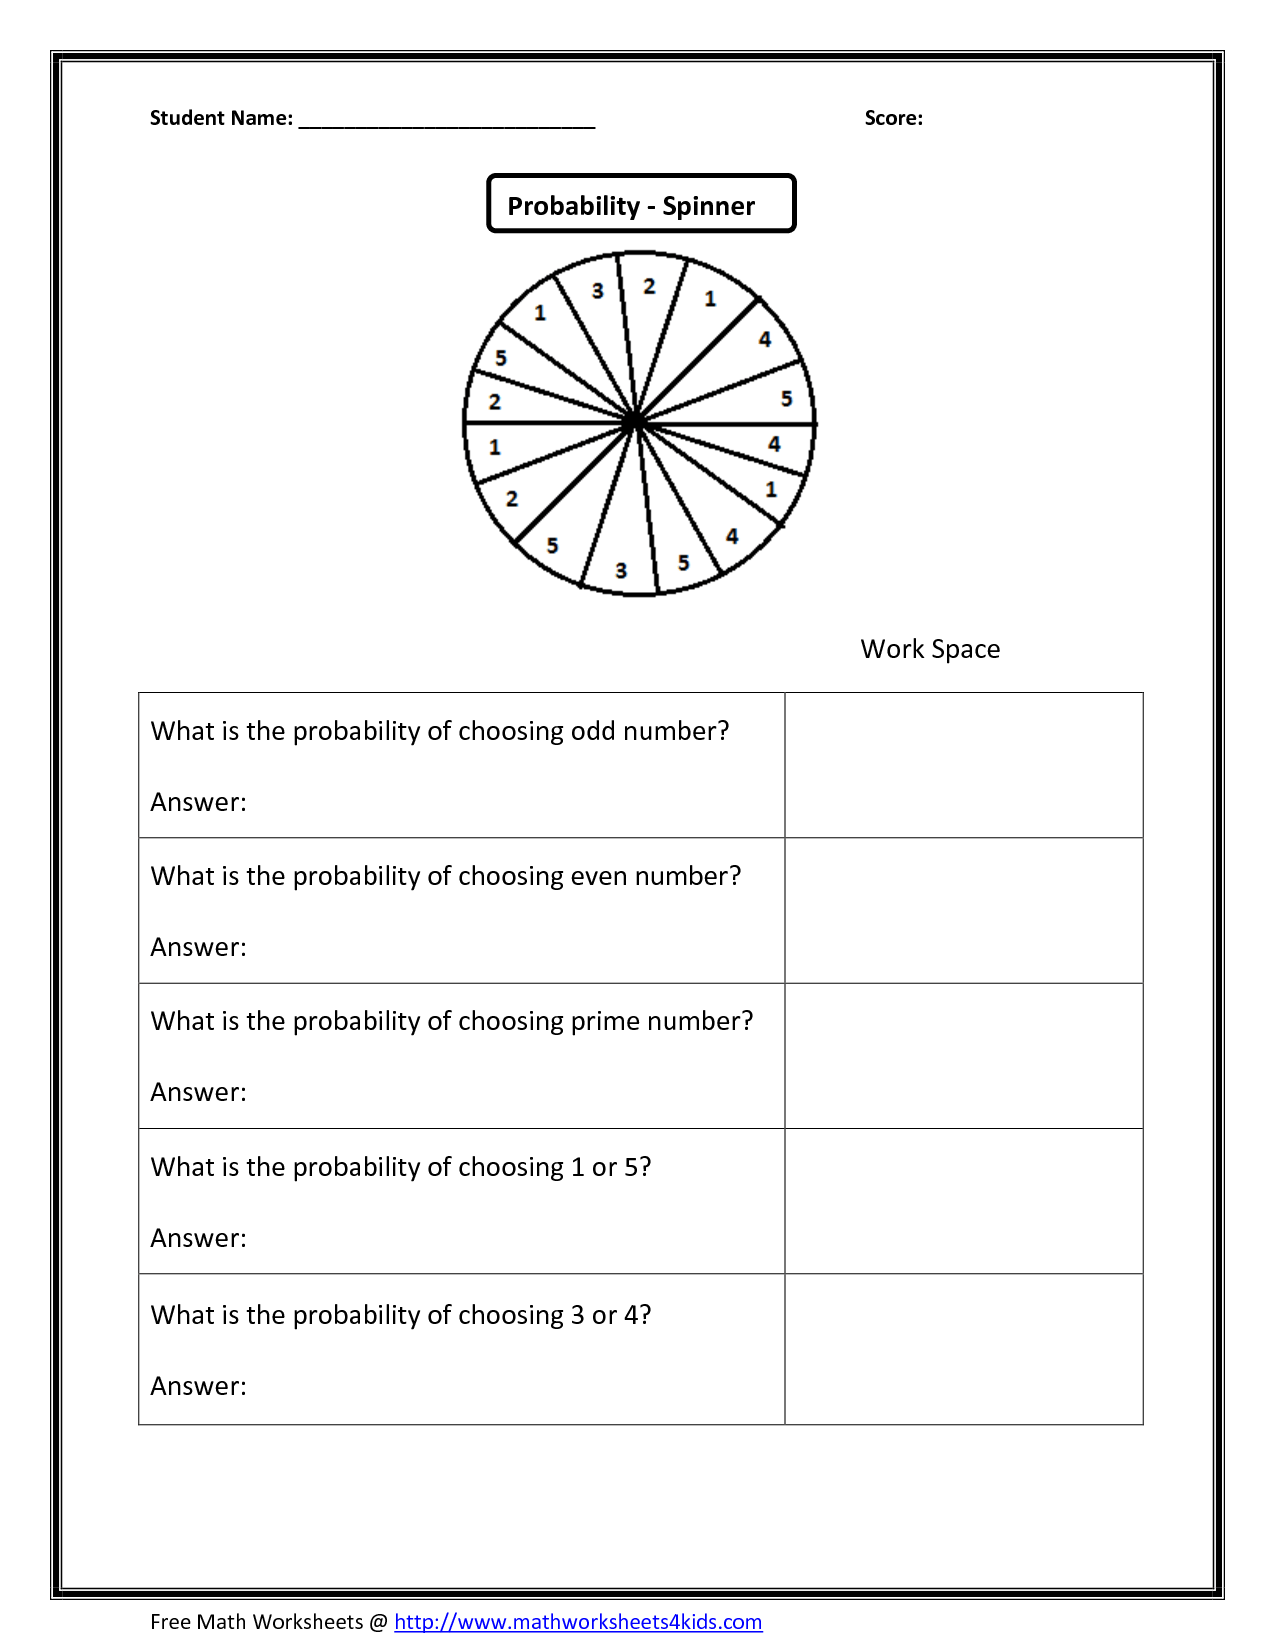 19 Best Images Of Compound Probability Worksheet 7th Grade